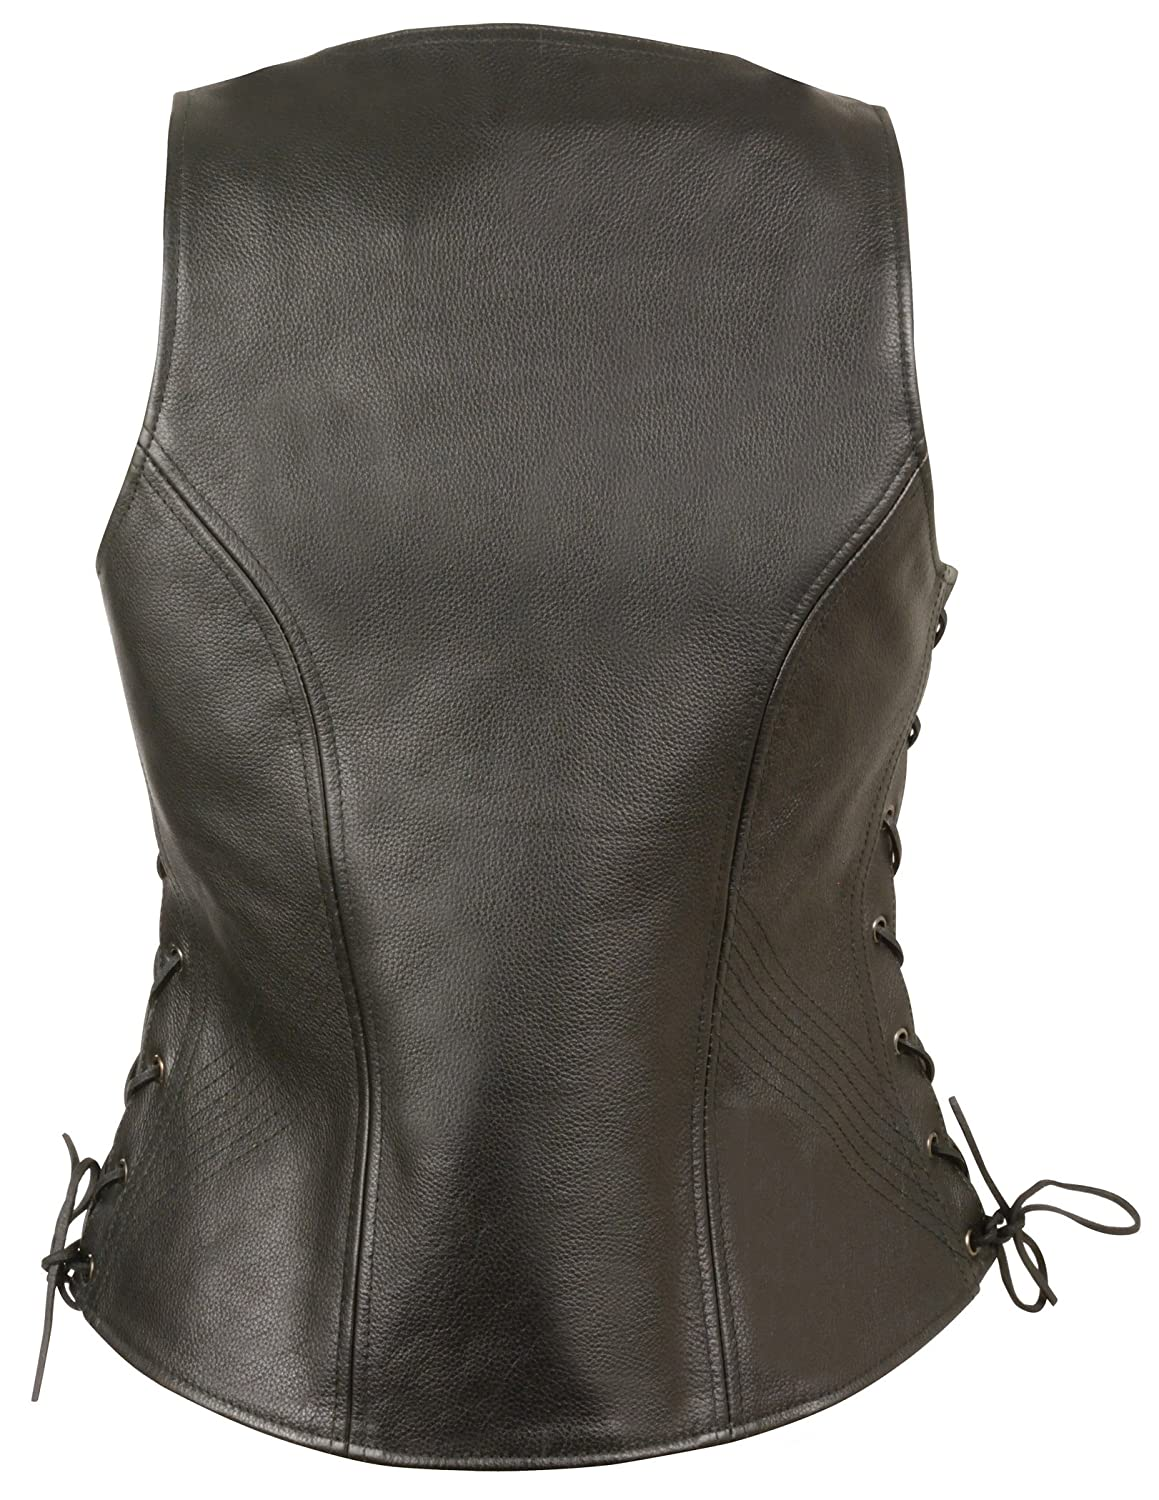 Milwaukee Womens Side Lace Vest with Stitch Detailing Black, X-Large